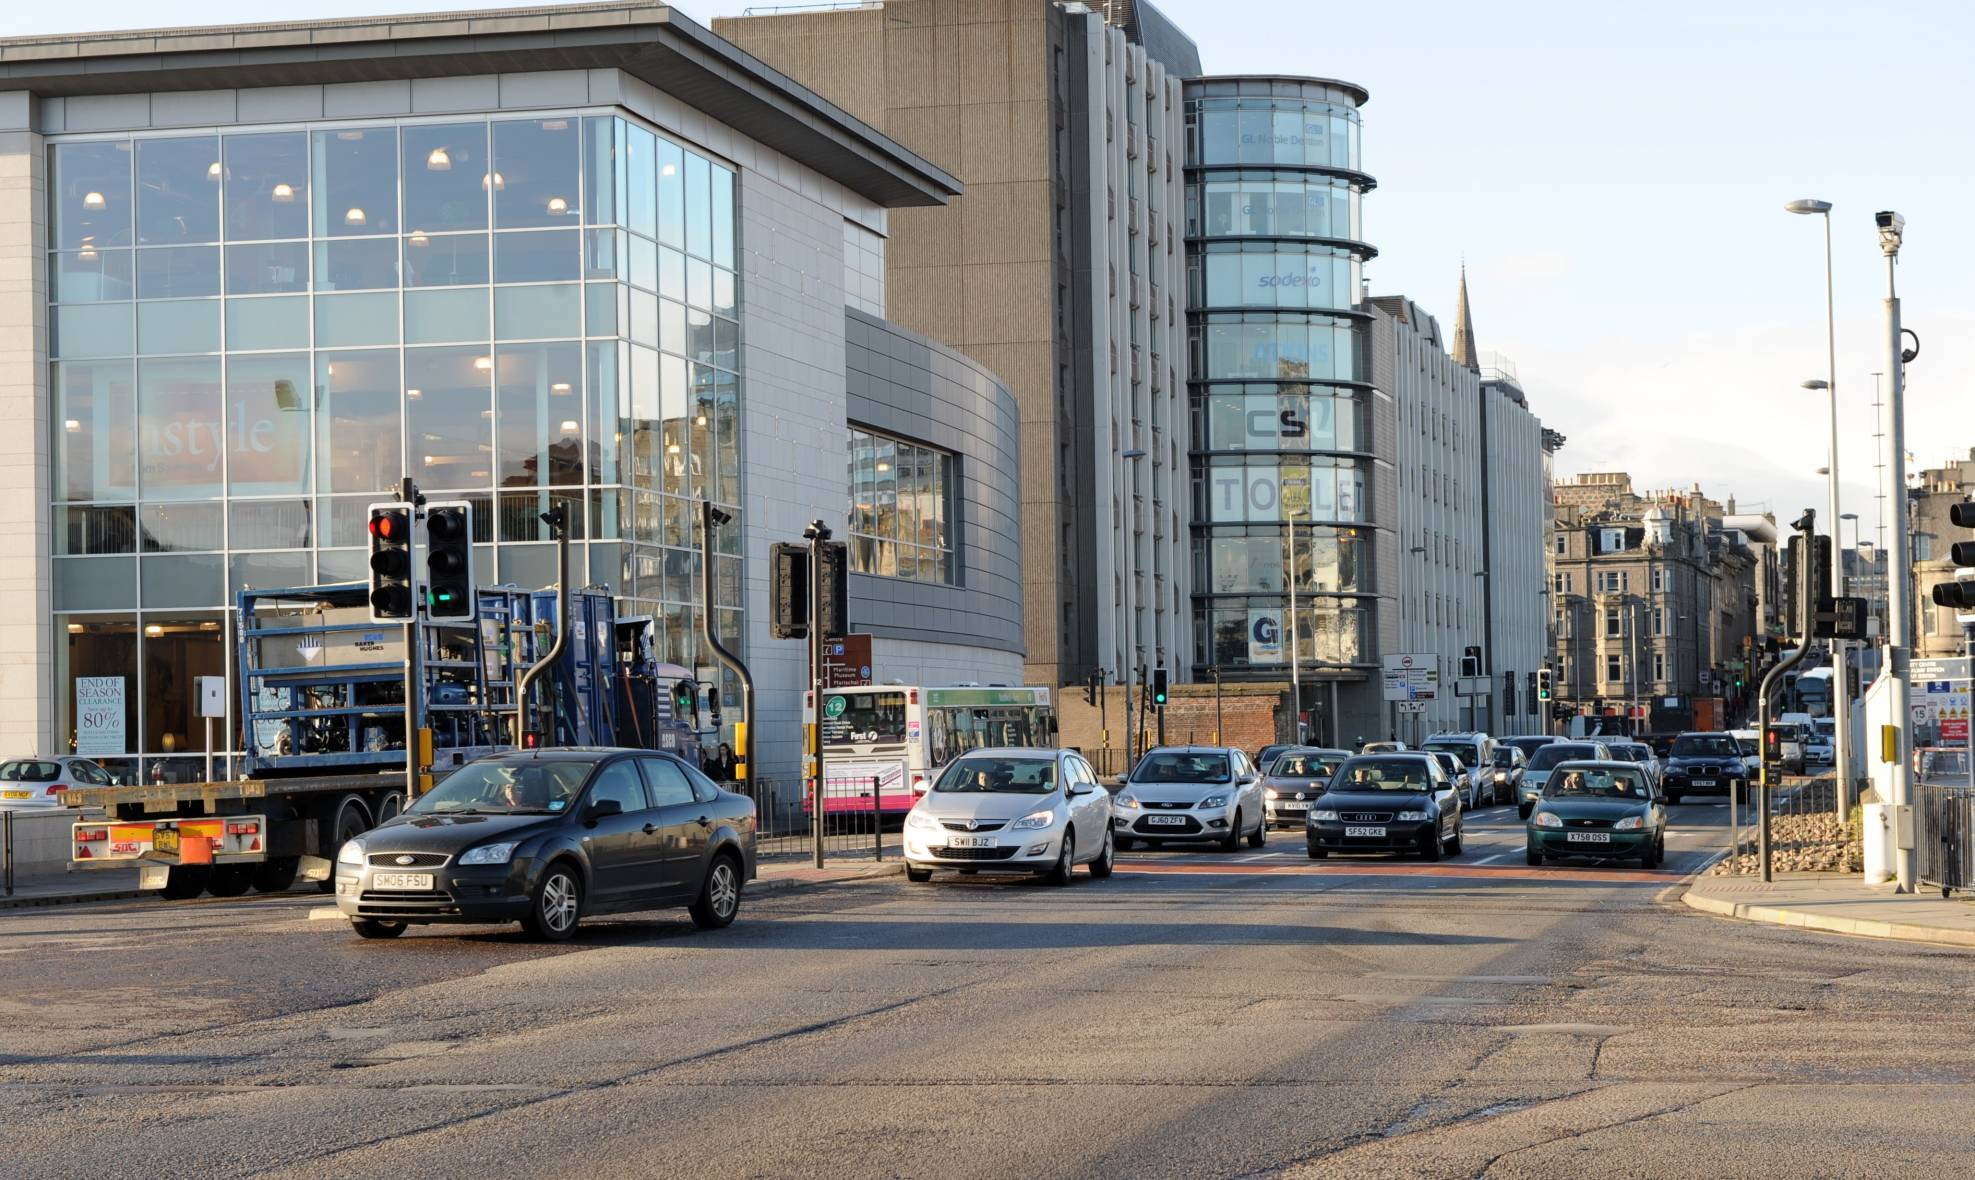 Traffic is slow around Aberdeen's Union Square.